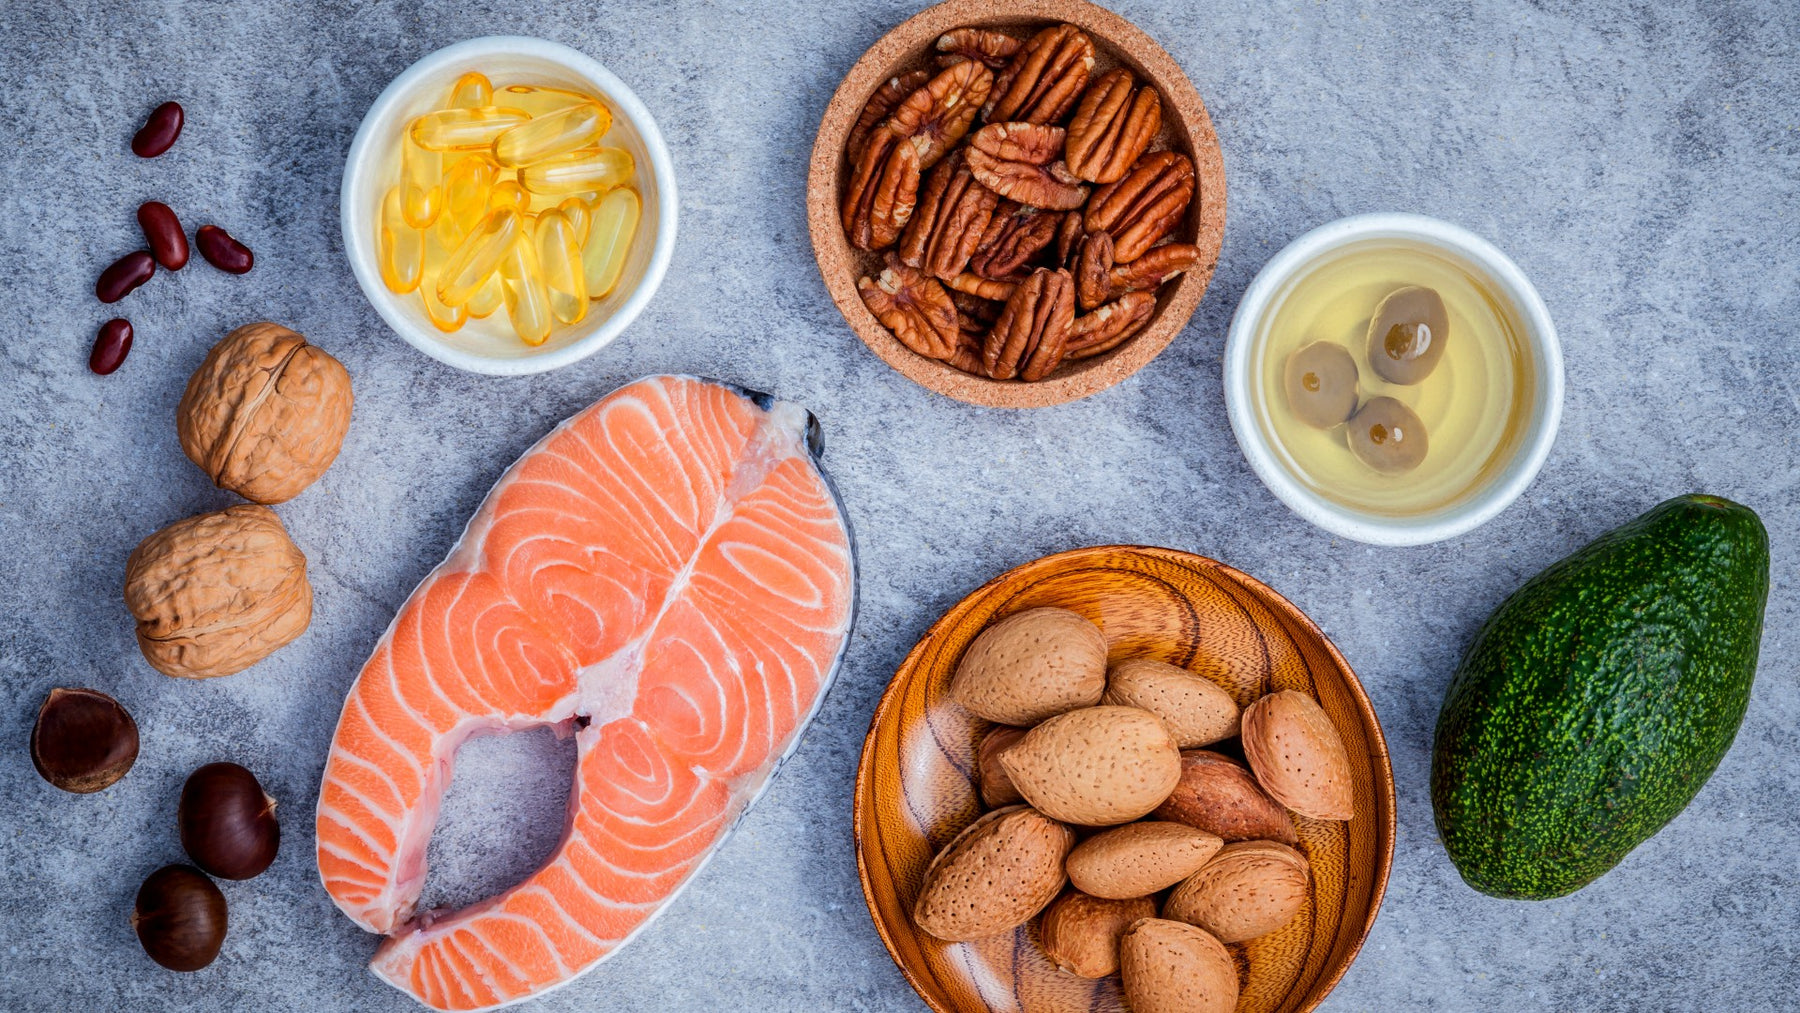 10 Vitamin D Foods You Should Be Eating